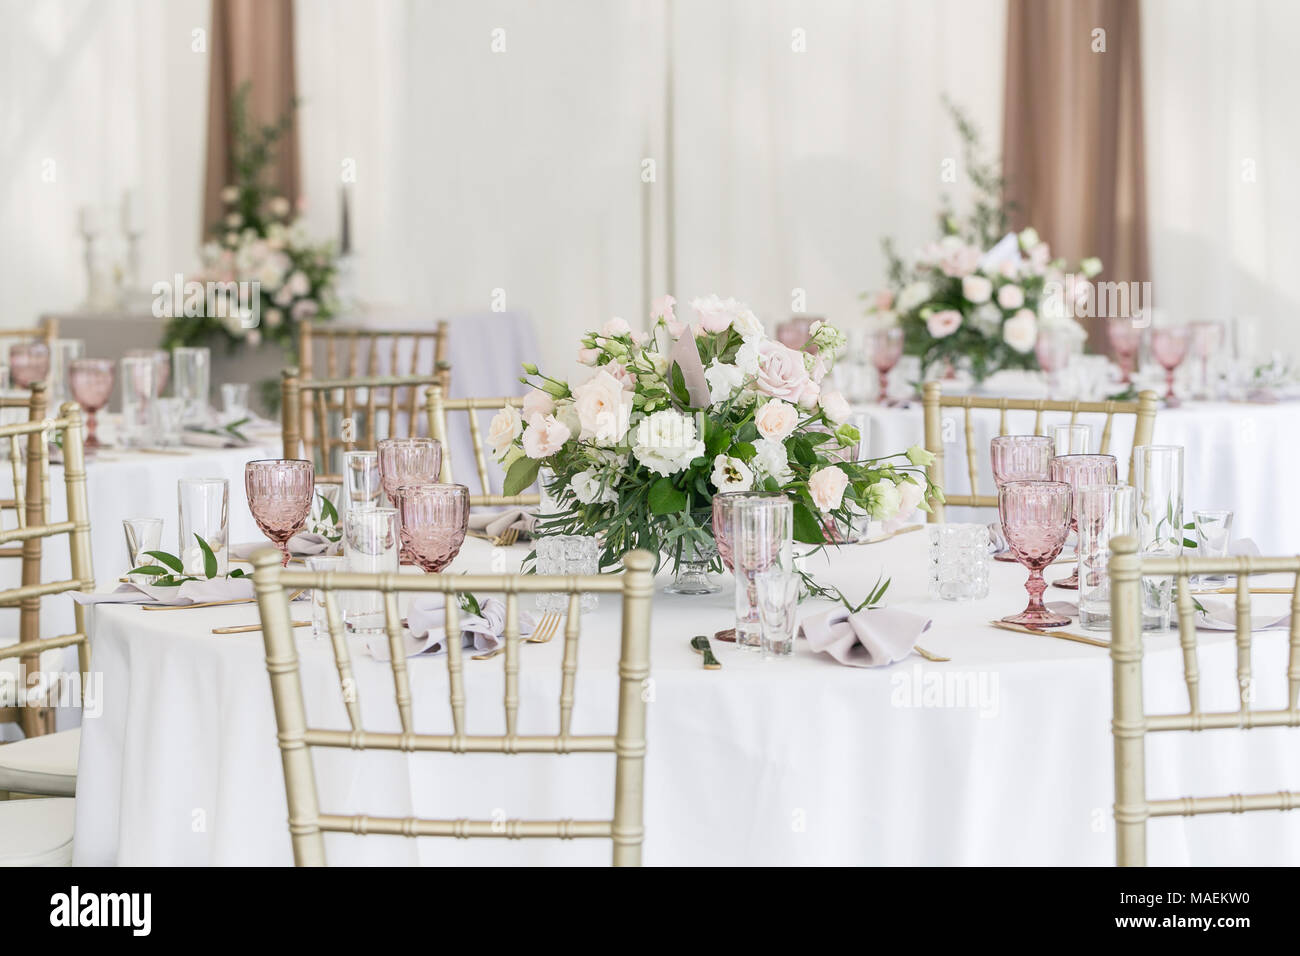 Beautiful Table Setting With Crockery And Flowers For A Party